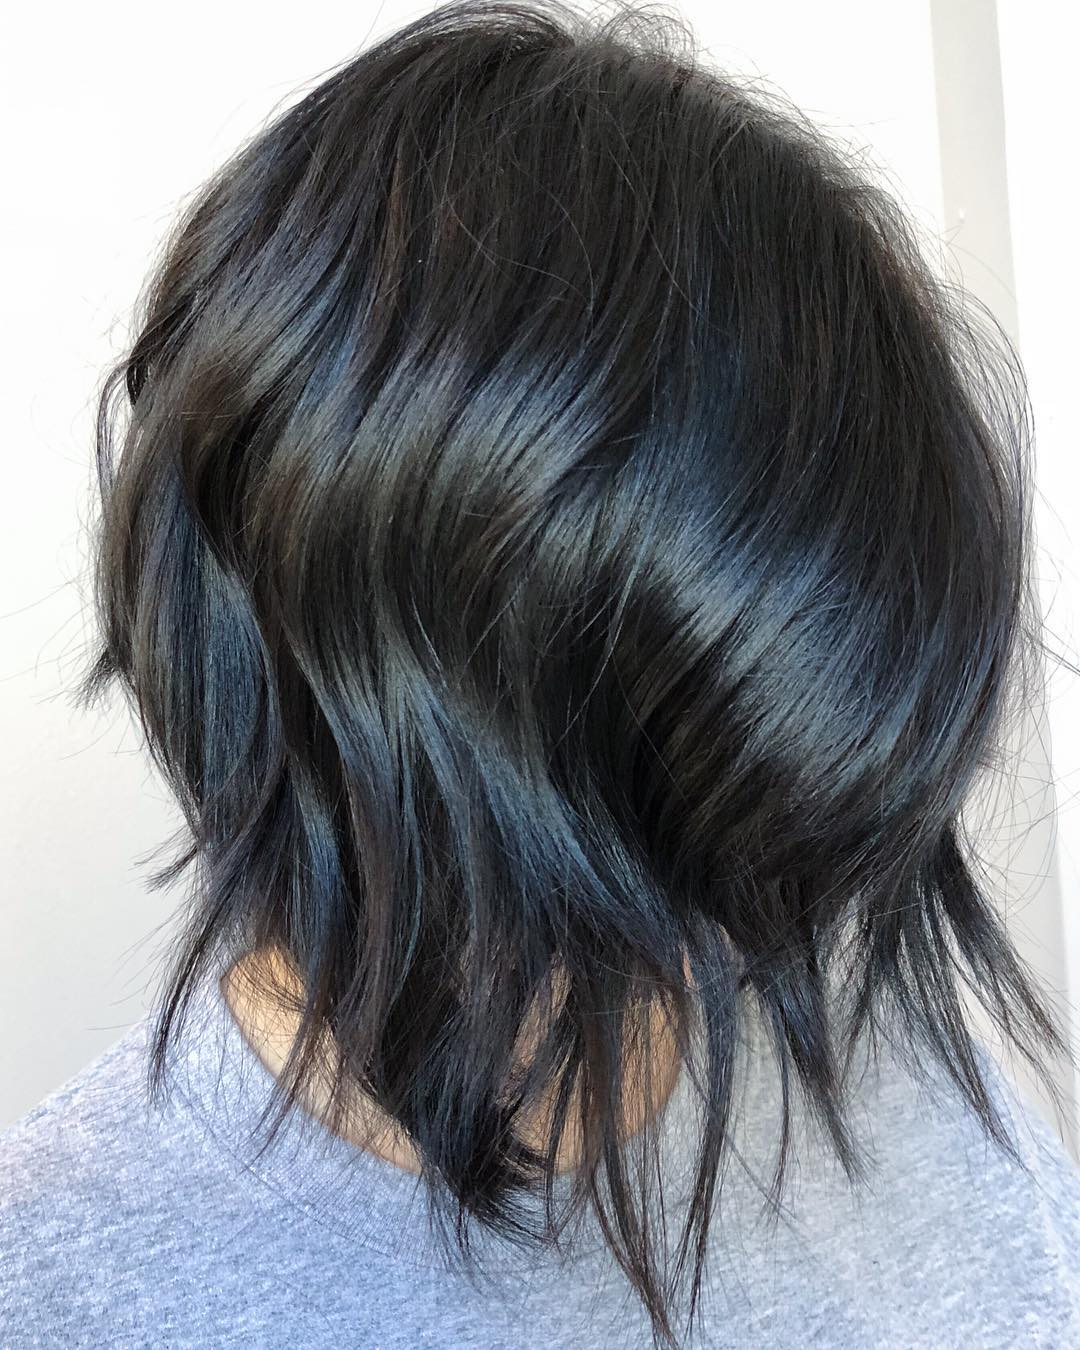 Inverted Razored Soft Black Colored Bob